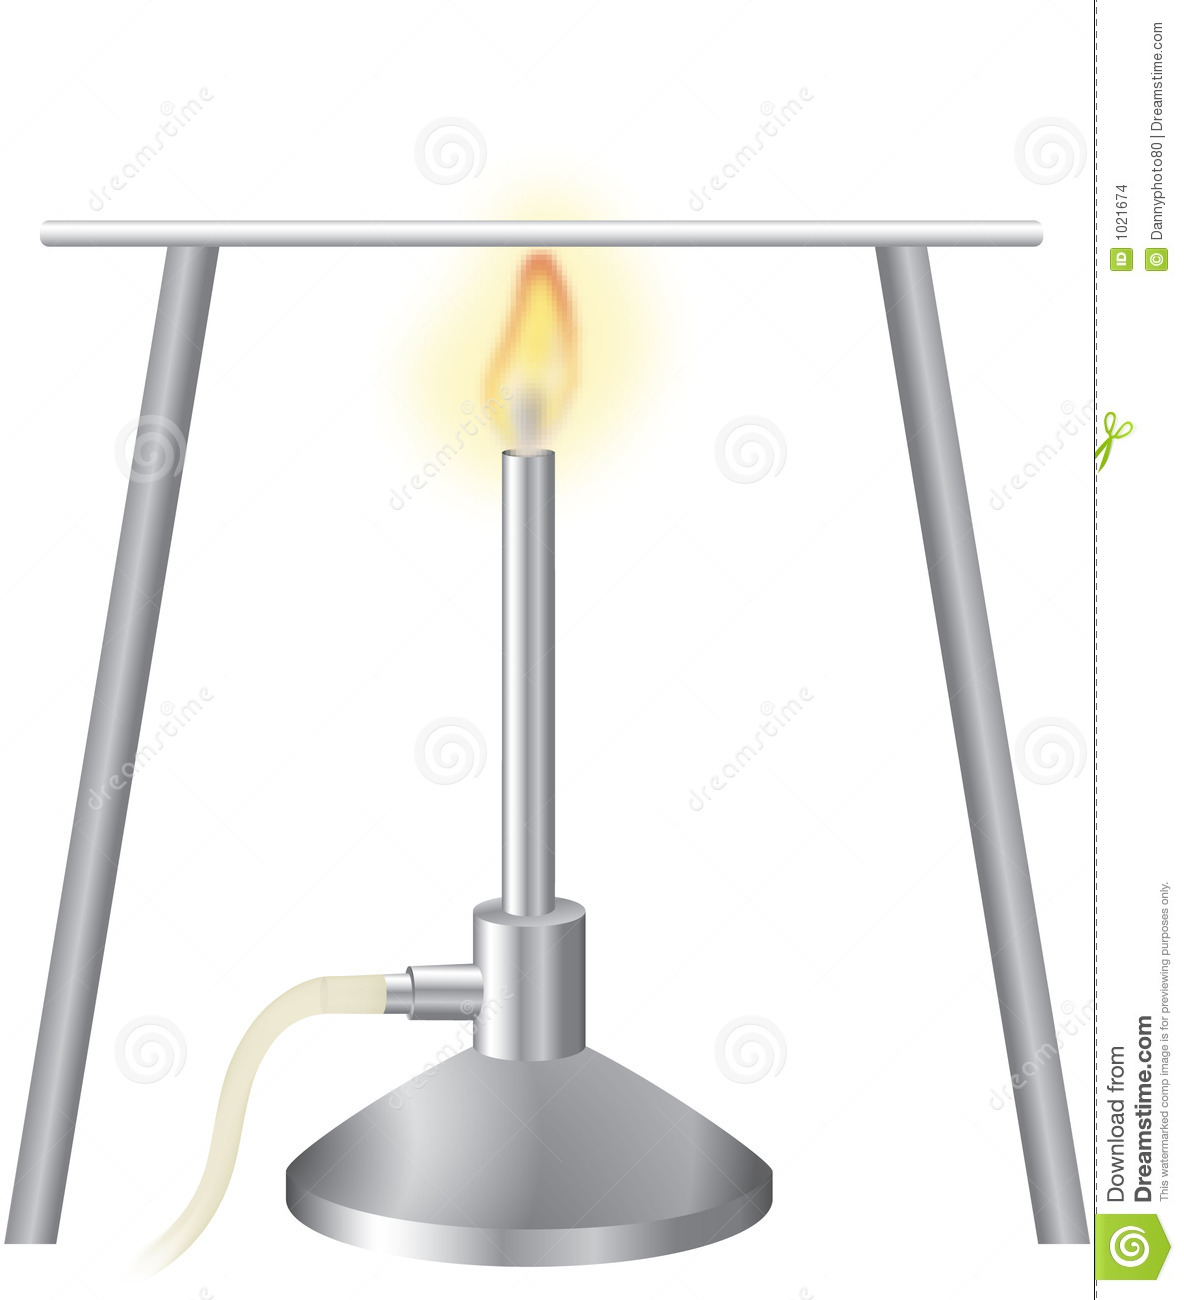 Bunsen burner 1 stock illustration illustration of equipment bunsen burner 1 pooptronica Choice Image